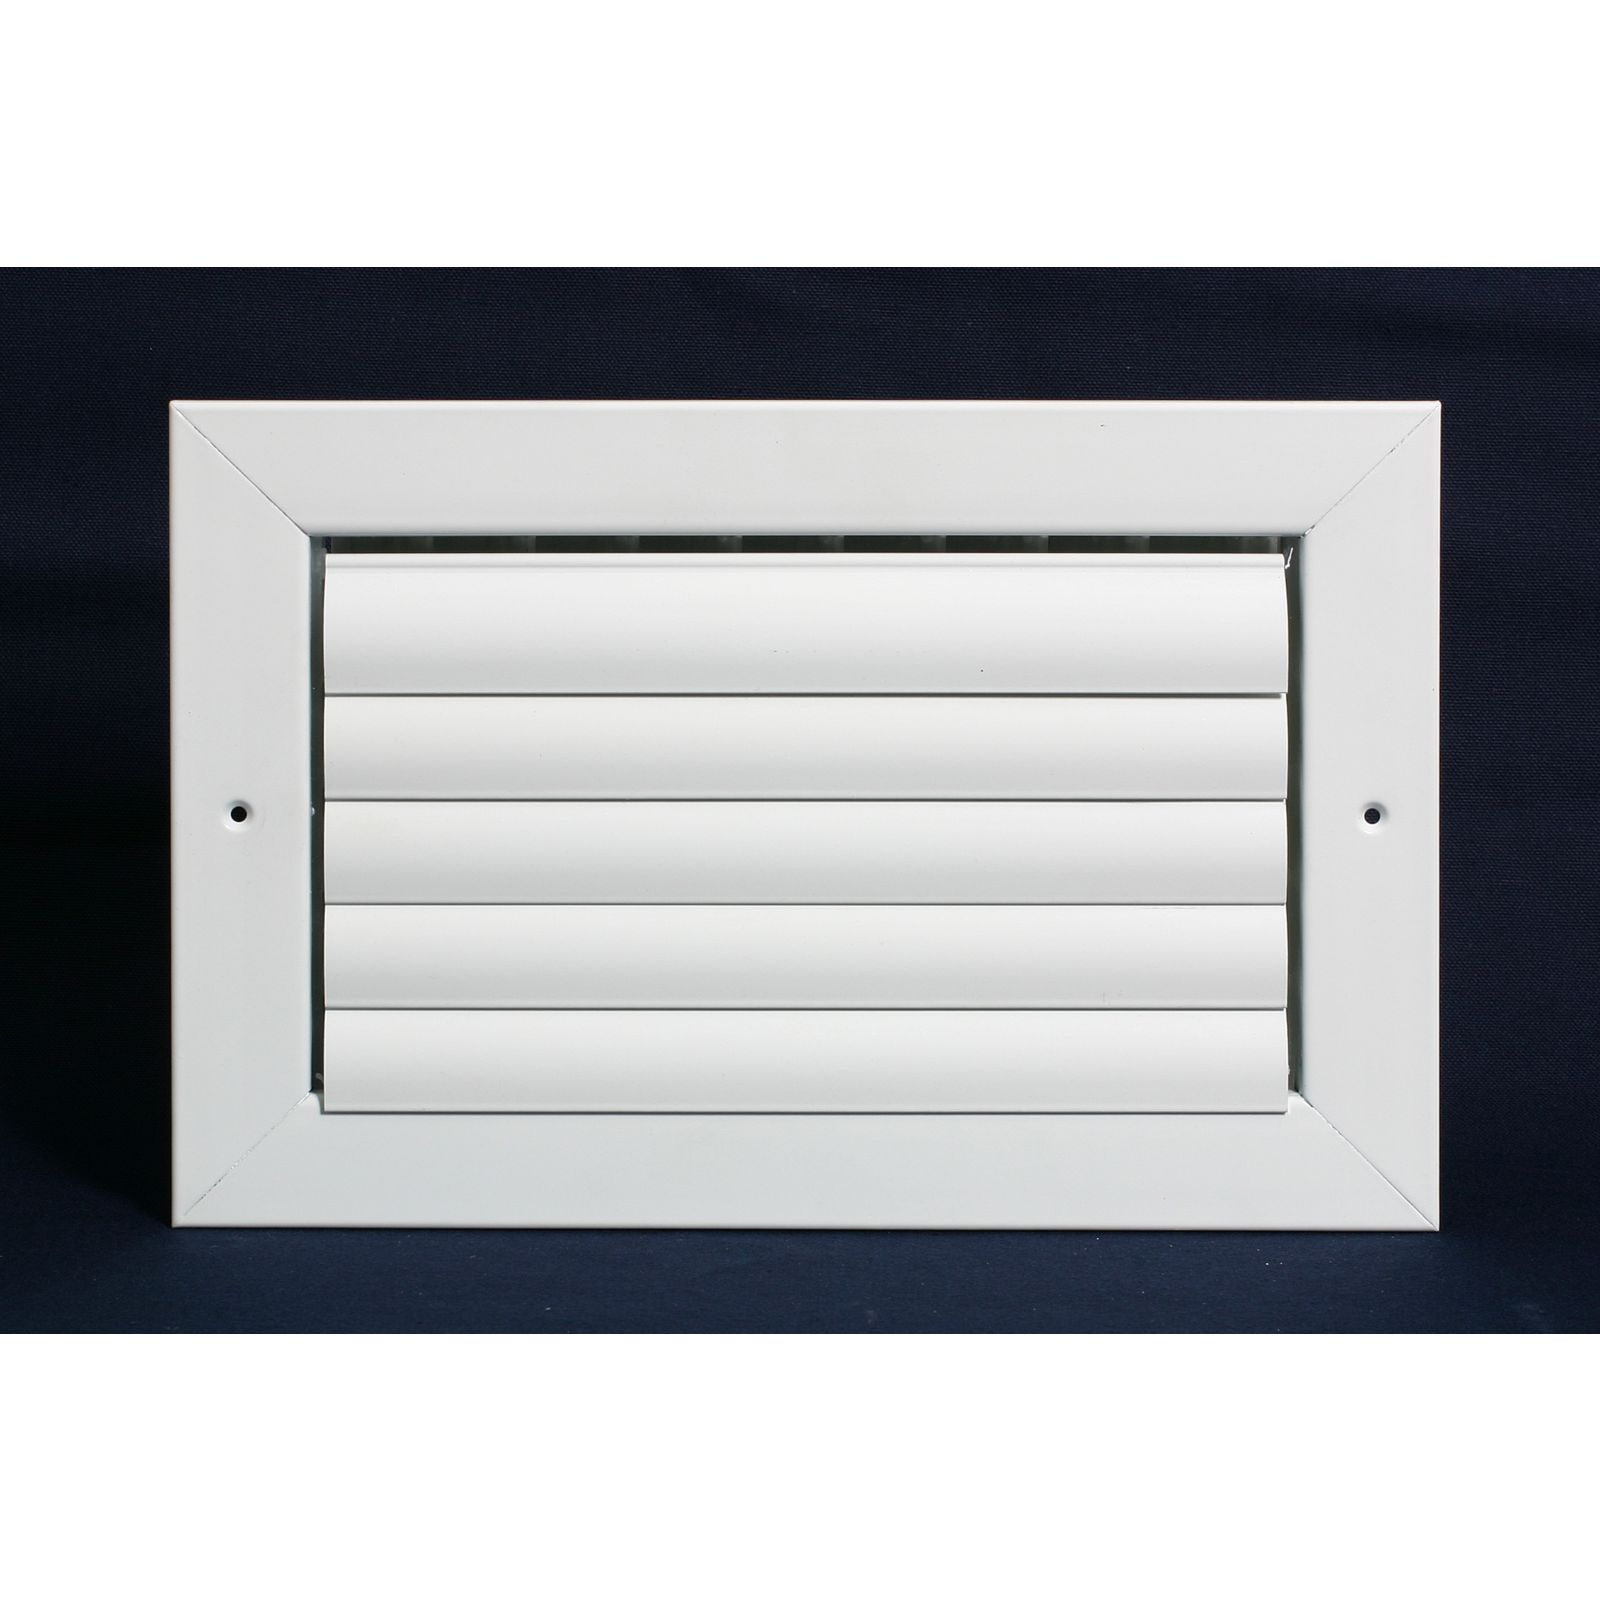 "Grille Tech CL1M1616 - Aluminum Ceiling 1-Way Deflection Supply, Multi-shutter 16"" X 16"" White"